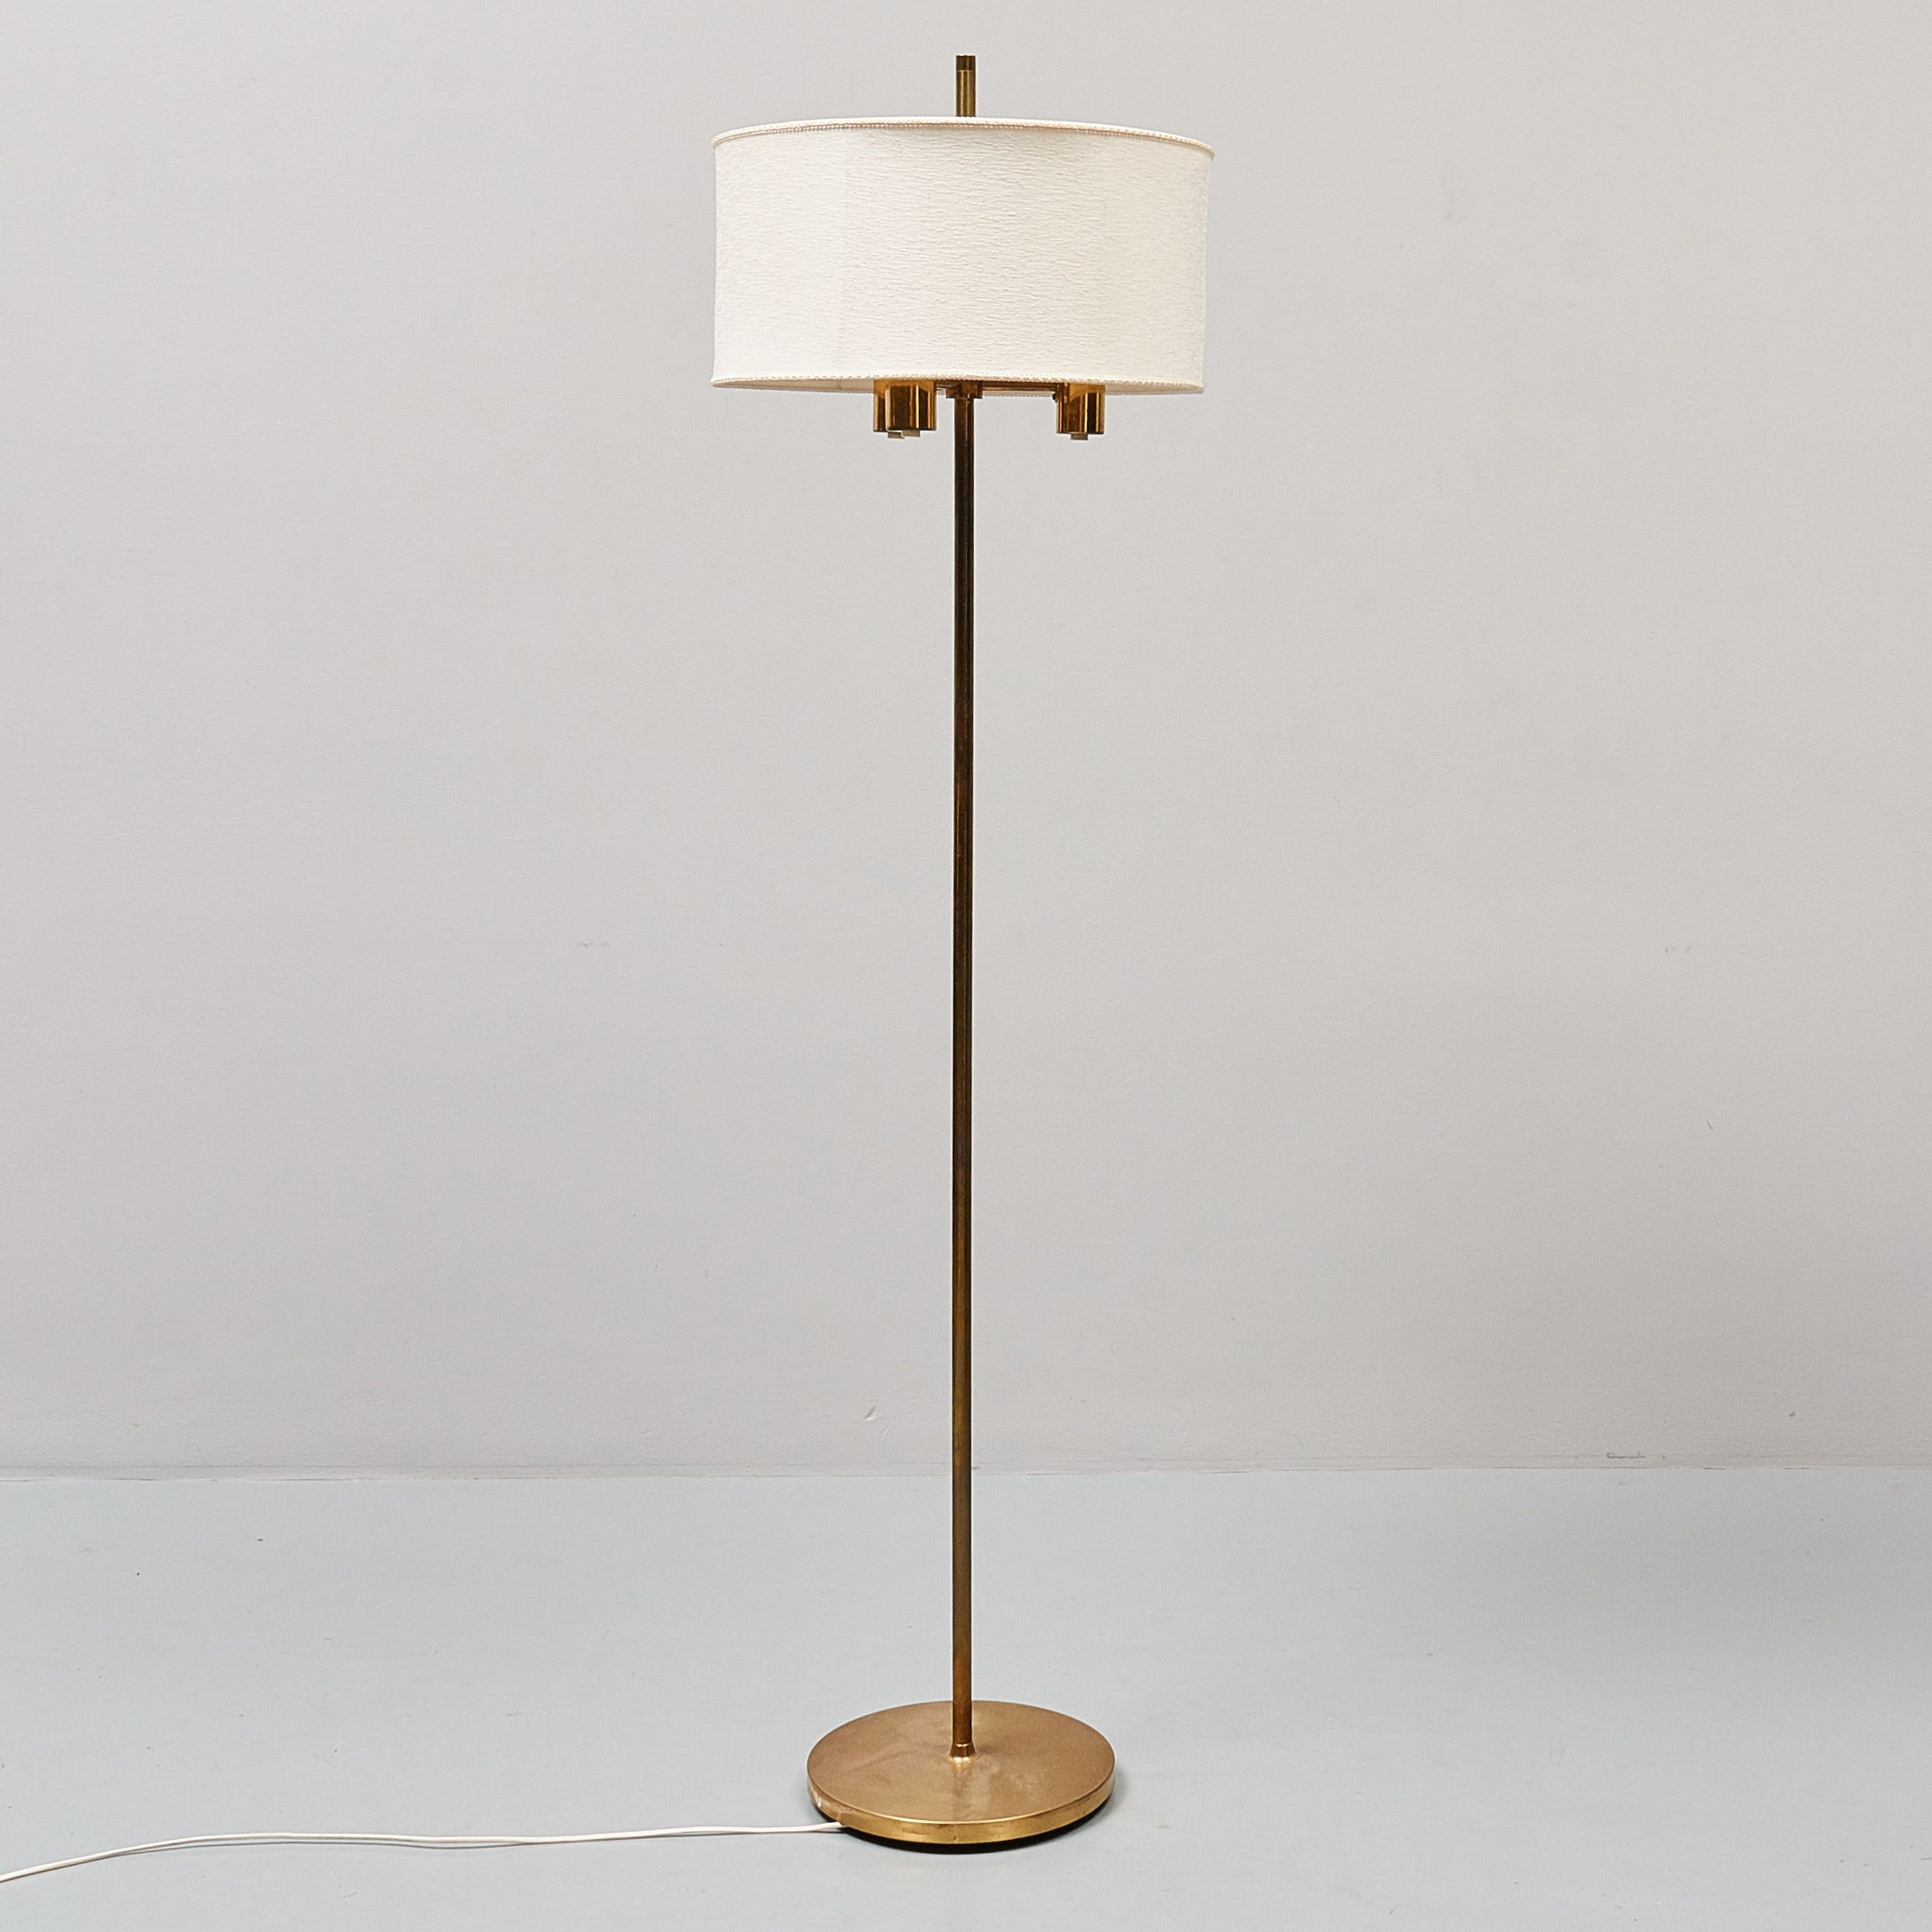 Golvlampa i mässing märkt FAB, 1960-tal. 165cm hög Brass floor lamp marked FAB, 1960's. H: 165cm/65